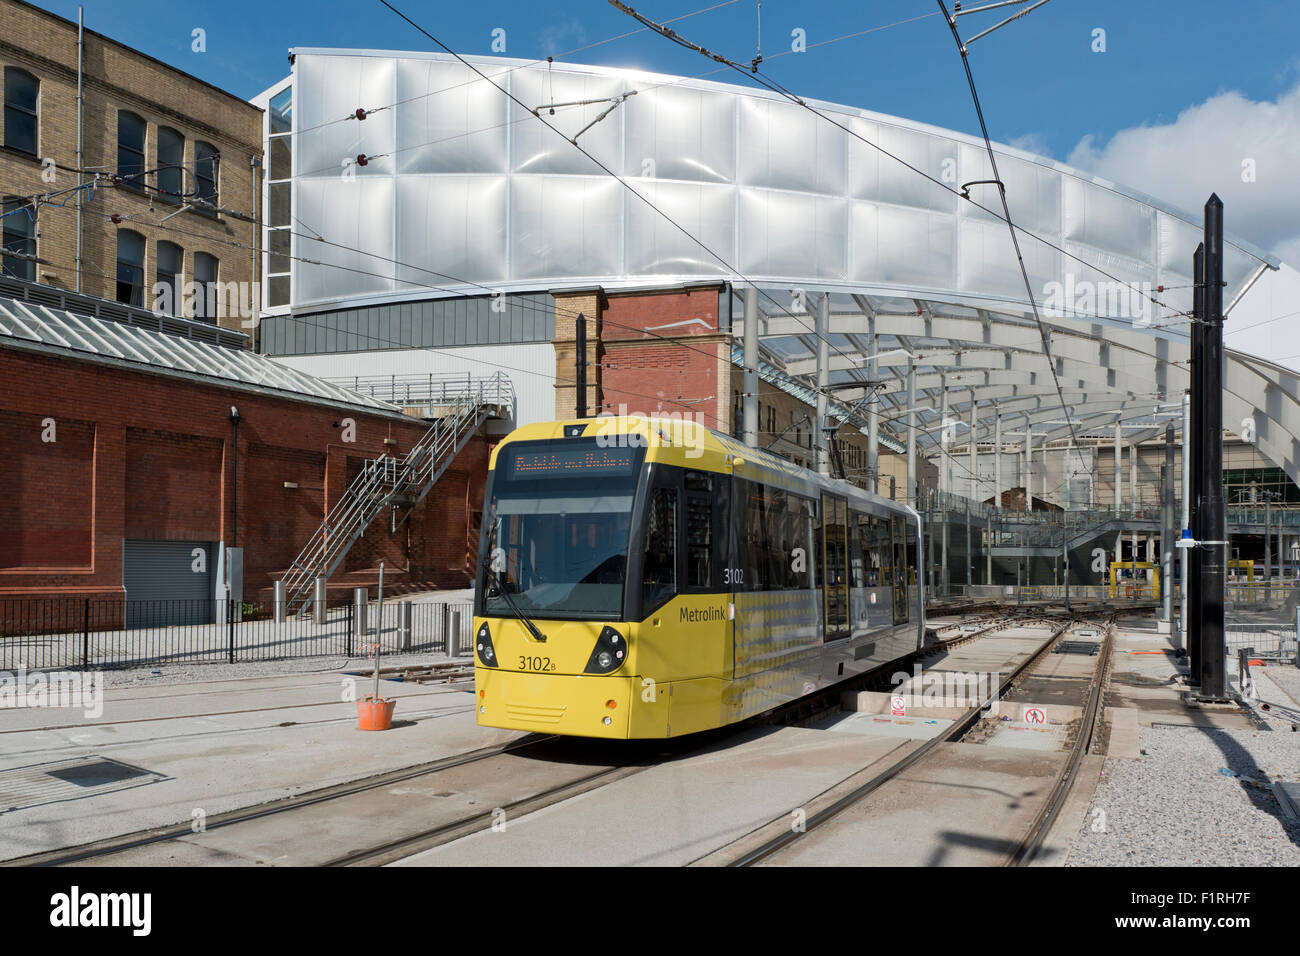 The refurbished Victoria Station in Manchester, as a Metrolink LRT tram emerges - Stock Image